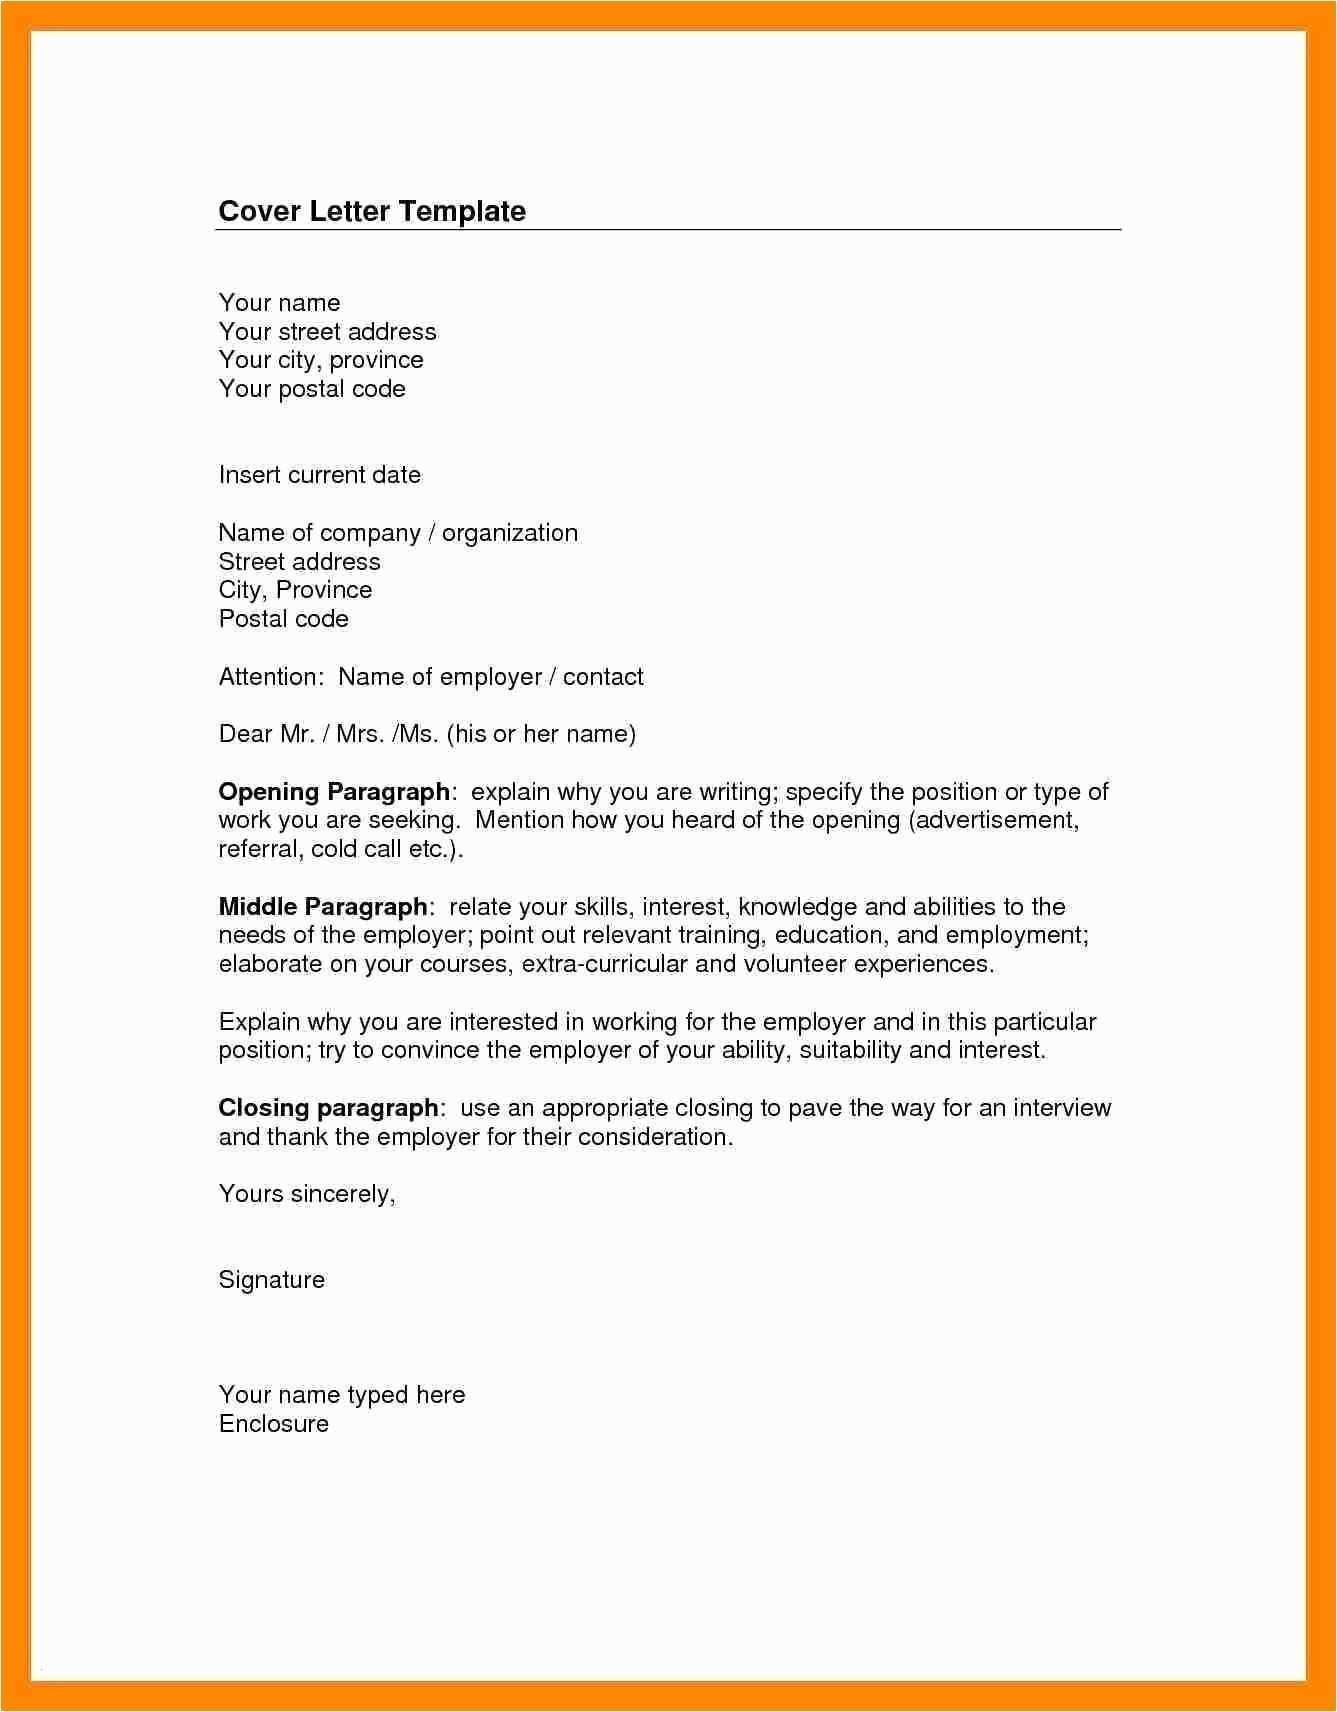 25 How To Address Cover Letter Cover Letter Examples For Job